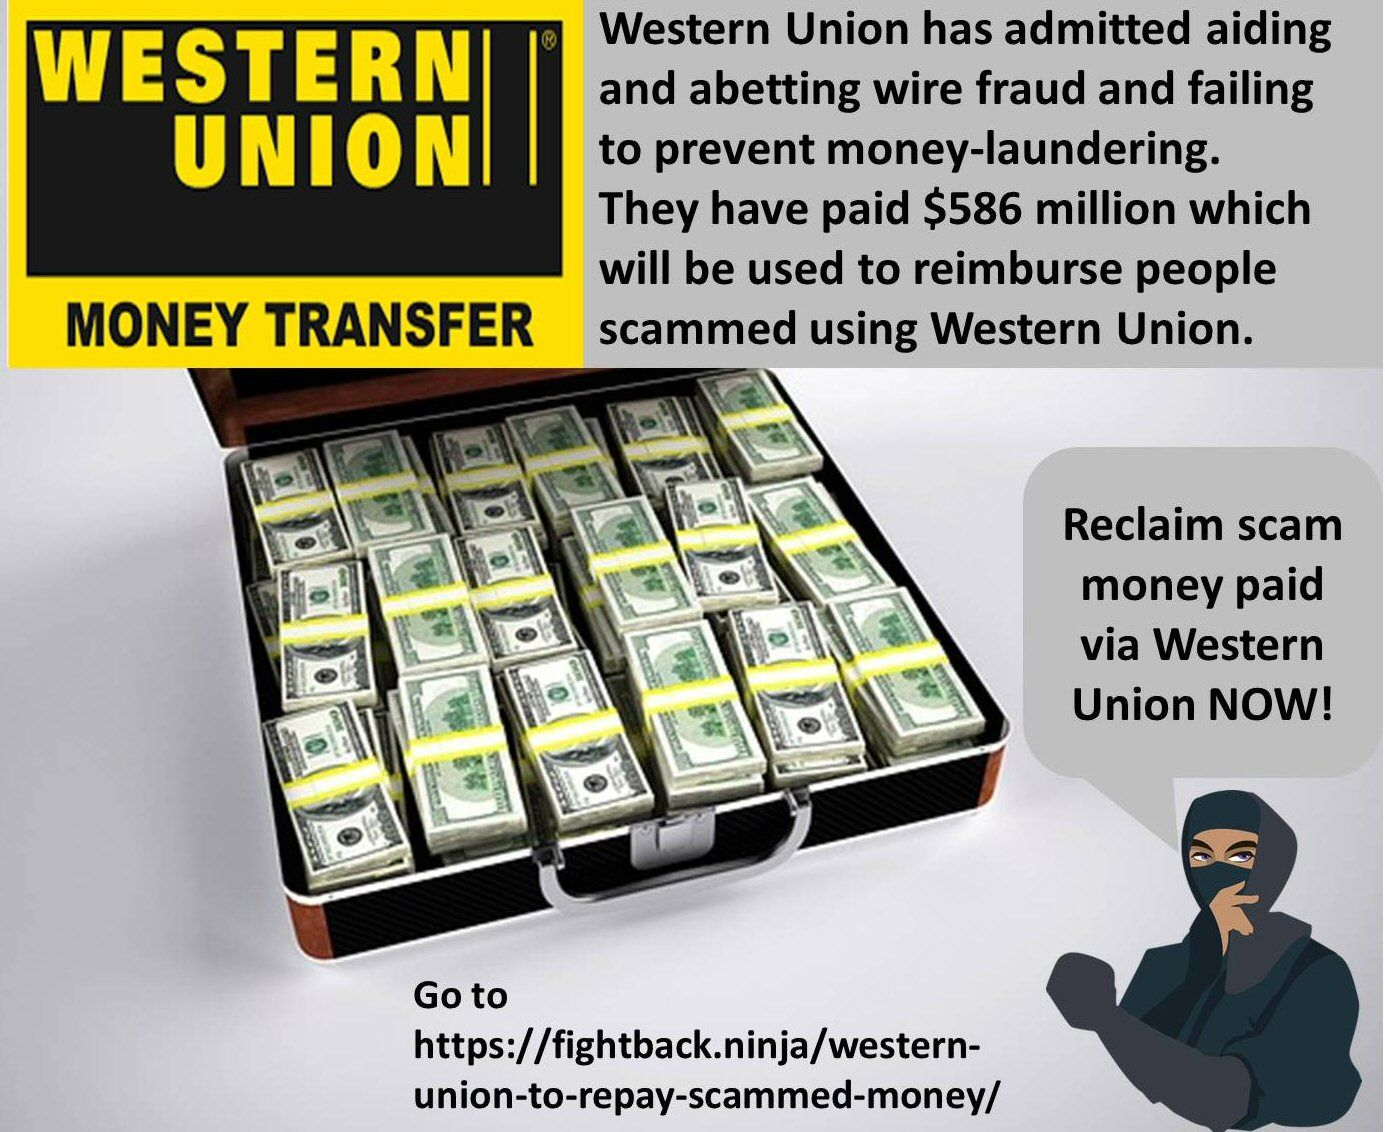 Western Union to Repay Scammed Money | Hacking | Atm card